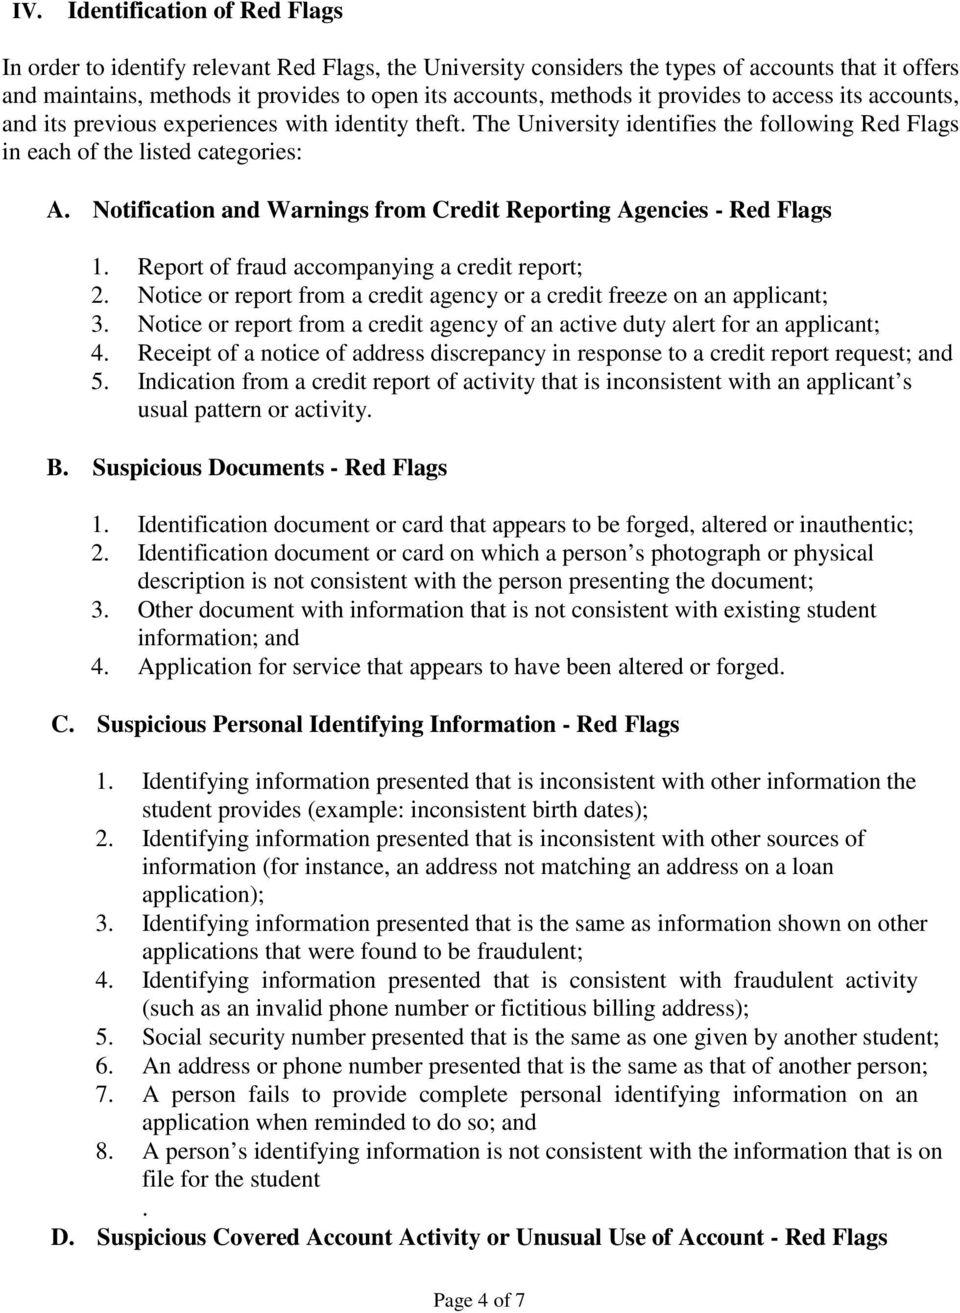 Notification and Warnings from Credit Reporting Agencies - Red Flags 1. Report of fraud accompanying a credit report; 2. Notice or report from a credit agency or a credit freeze on an applicant; 3.